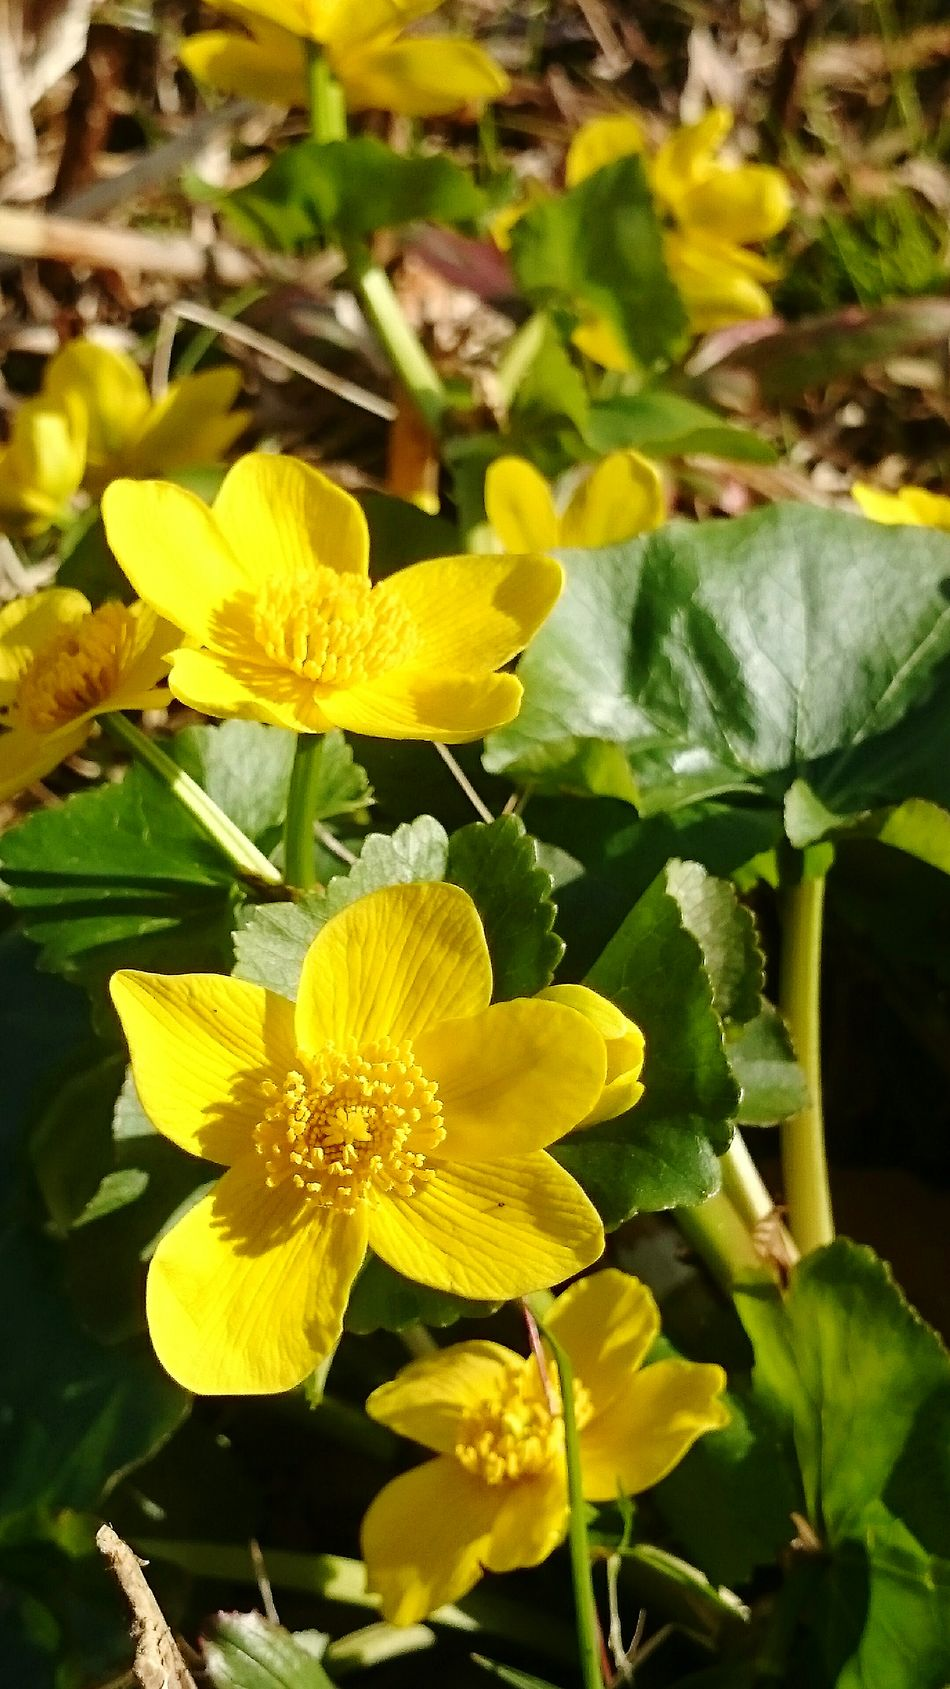 Nature Growth Flower Yellow Freshness Beauty In Nature Leaf Flower Head Plant Fragility Petal Close-up Outdoors No People Day Marsh Marigold Kingcup Cowslip Springtime Freshness